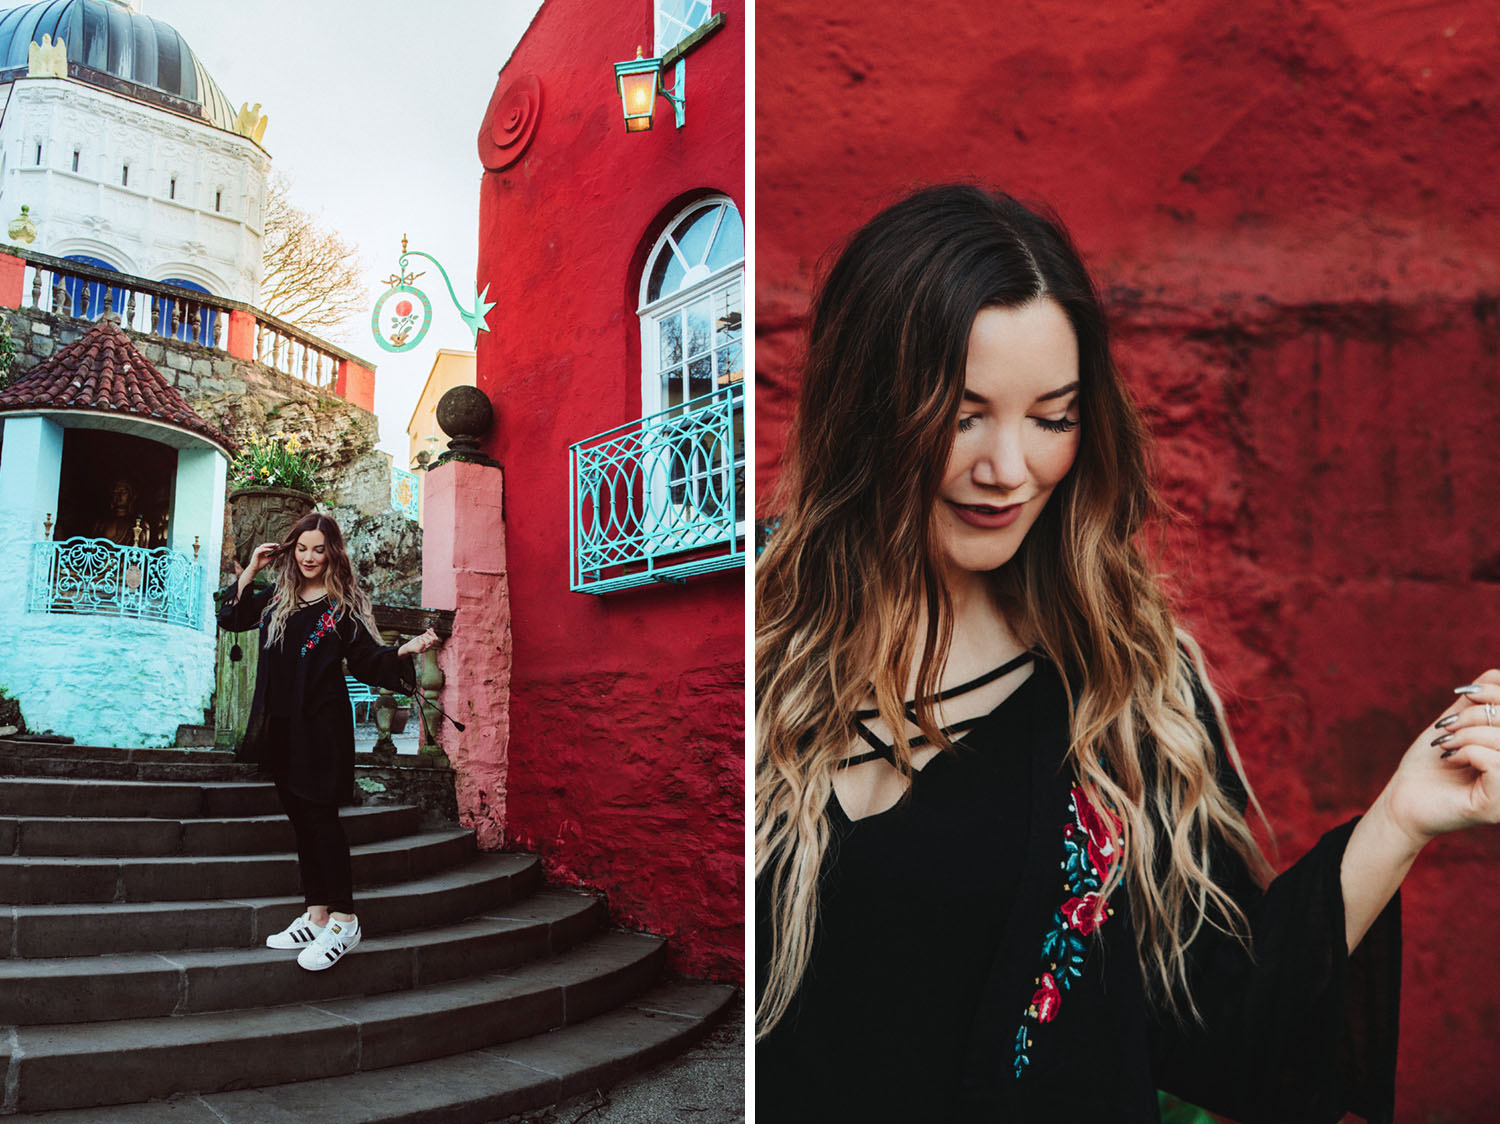 Portraits against a red building in Portmeirion